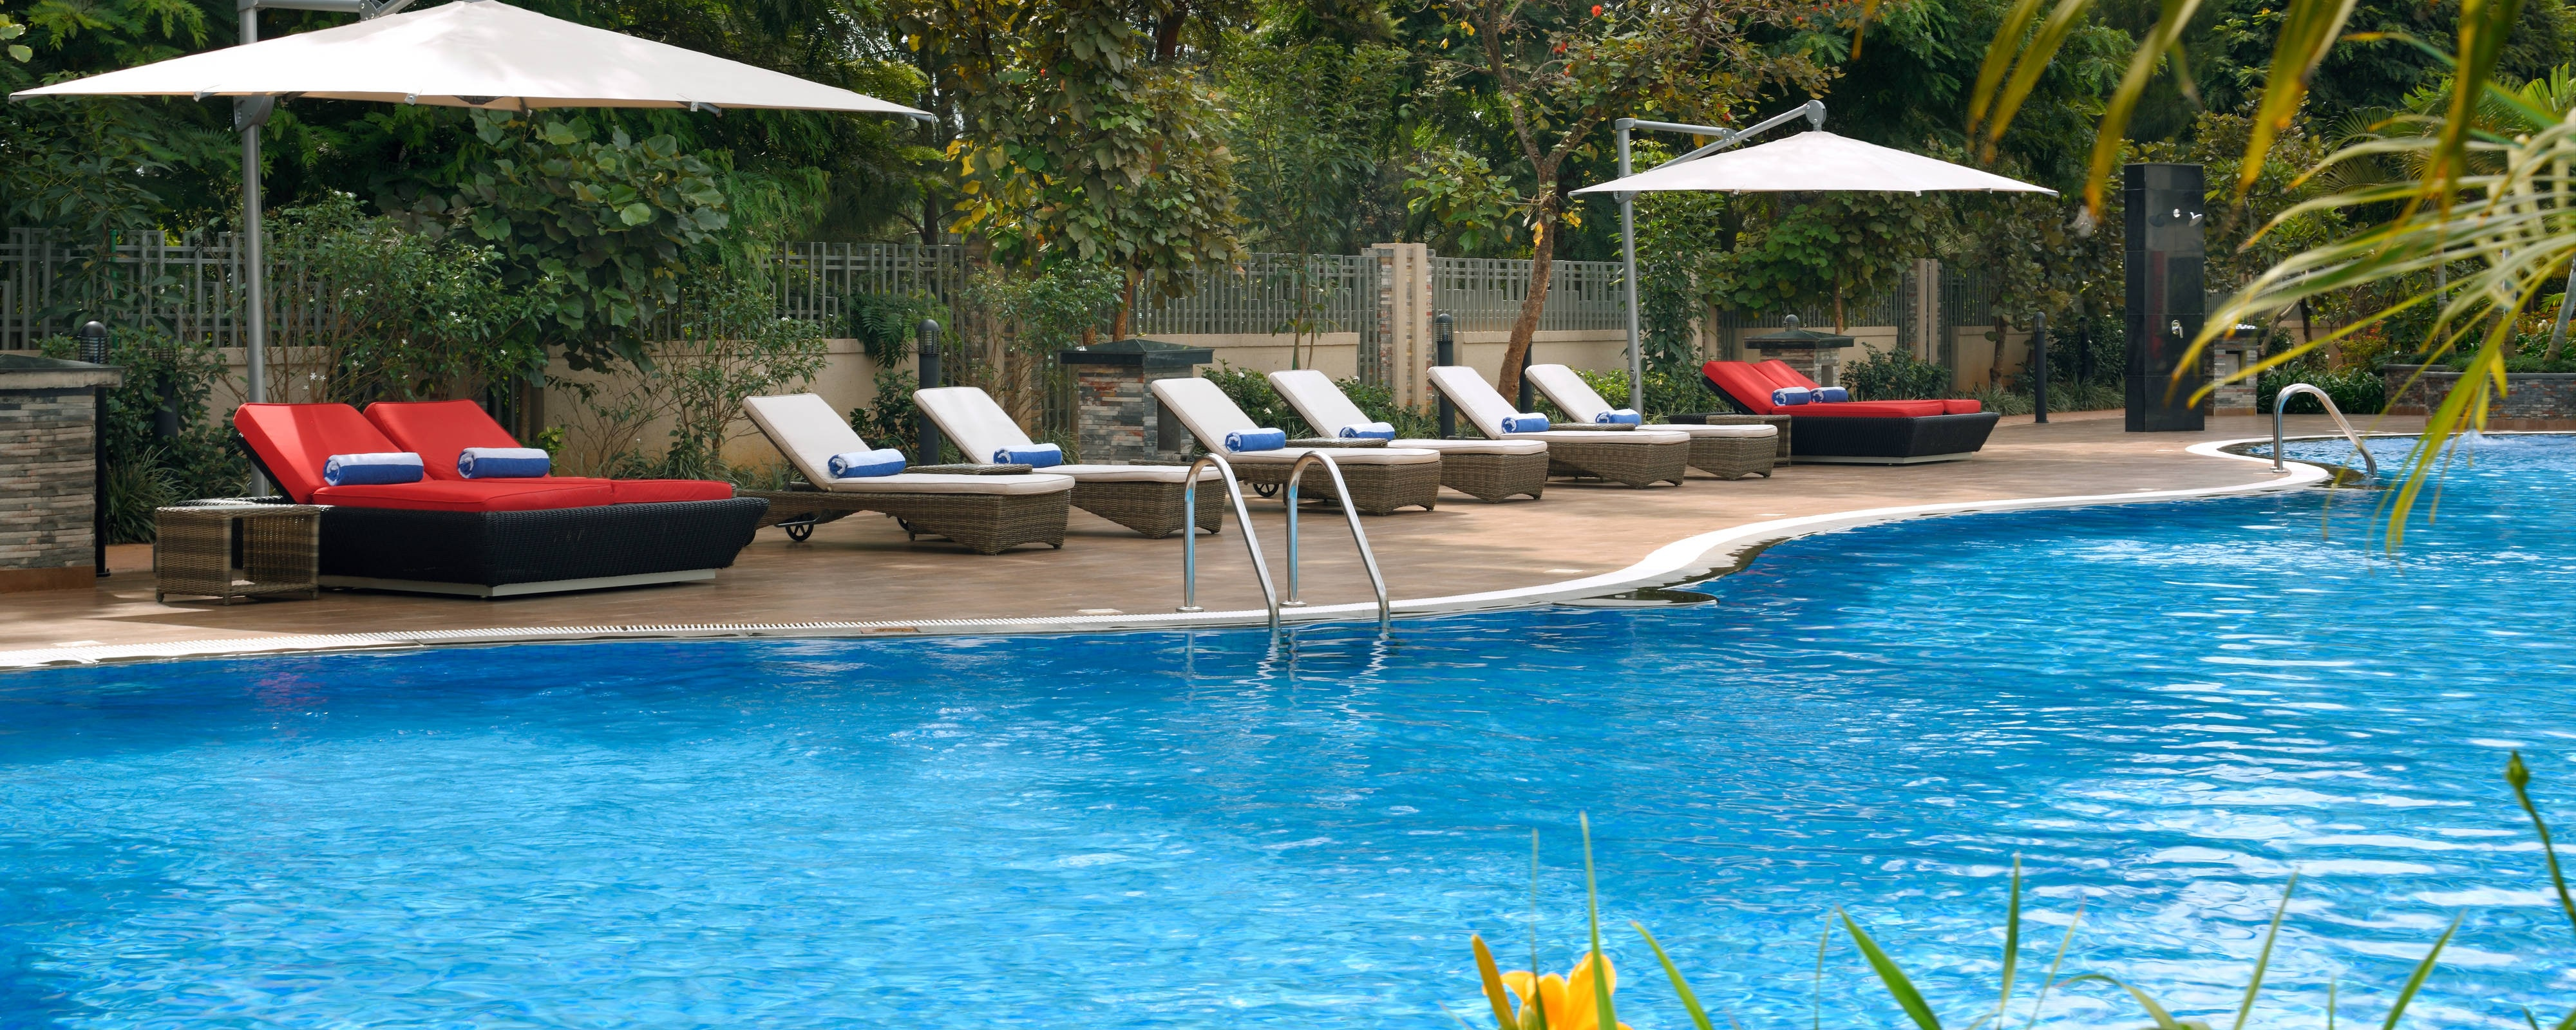 86 Chicago Hotels With Outdoor Pools Cheap Hotels With